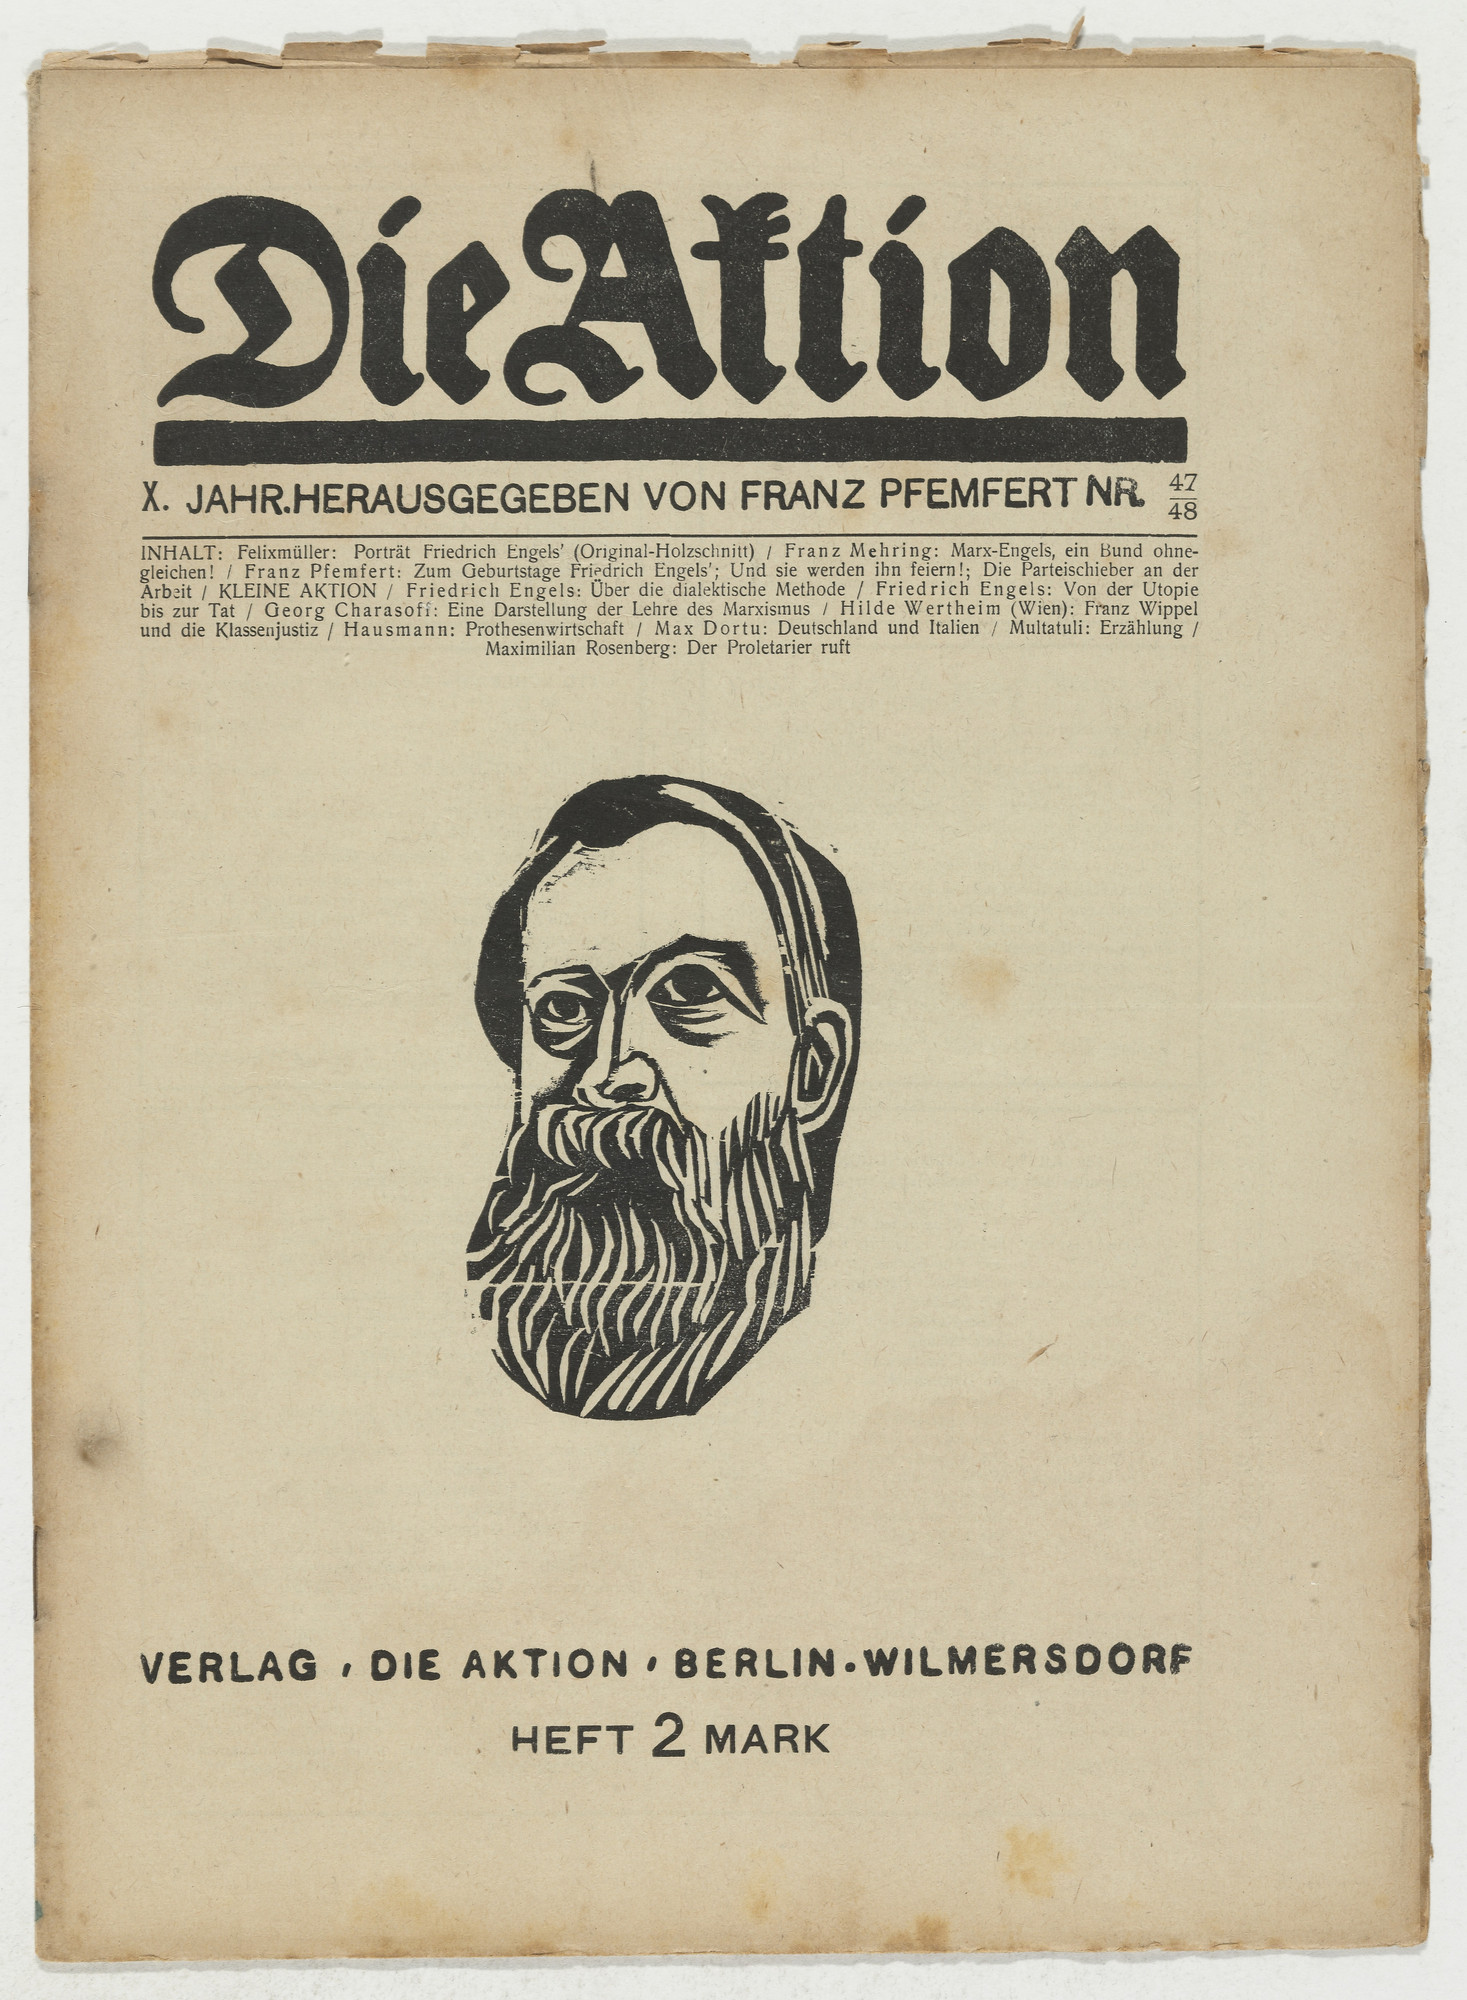 Conrad Felixmüller. Die Aktion, vol. 10, no. 47/48. November 27, 1920